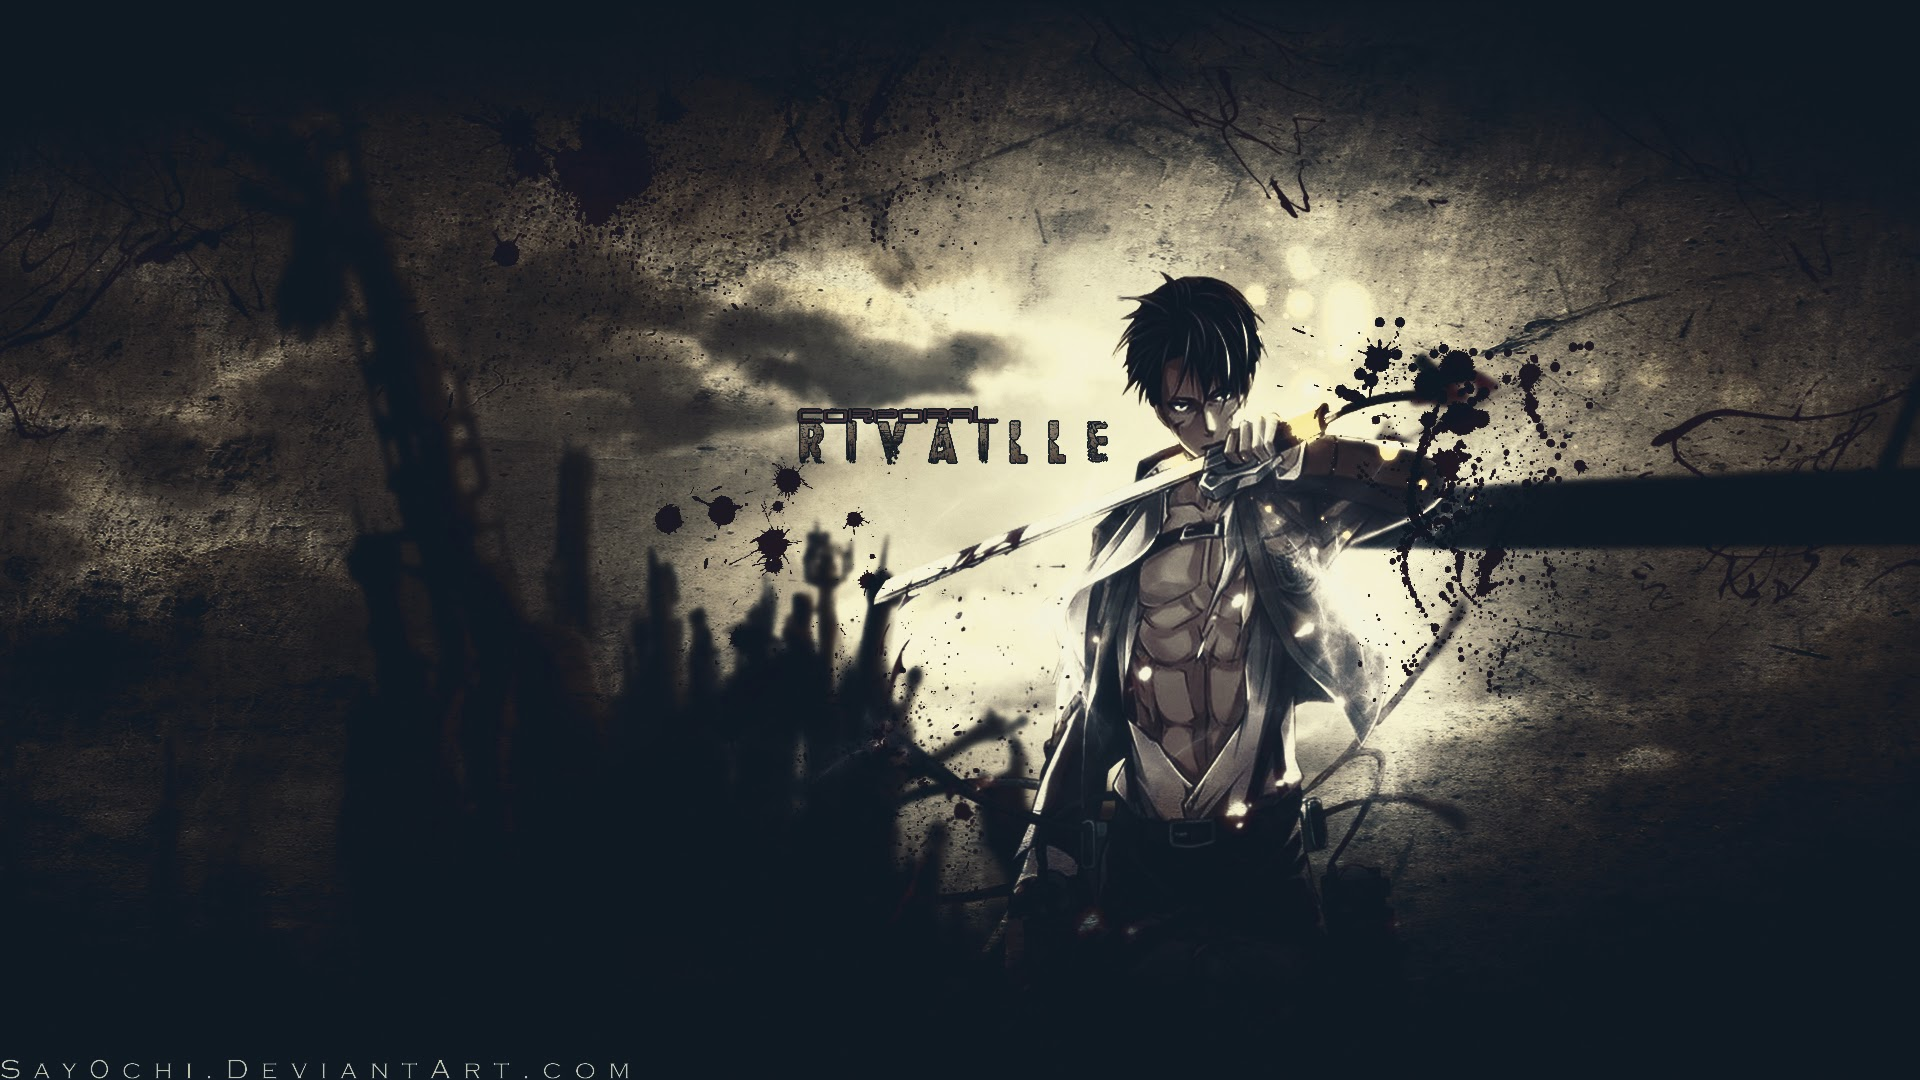 49] Attack on Titan Wallpaper HD on WallpaperSafari 1920x1080